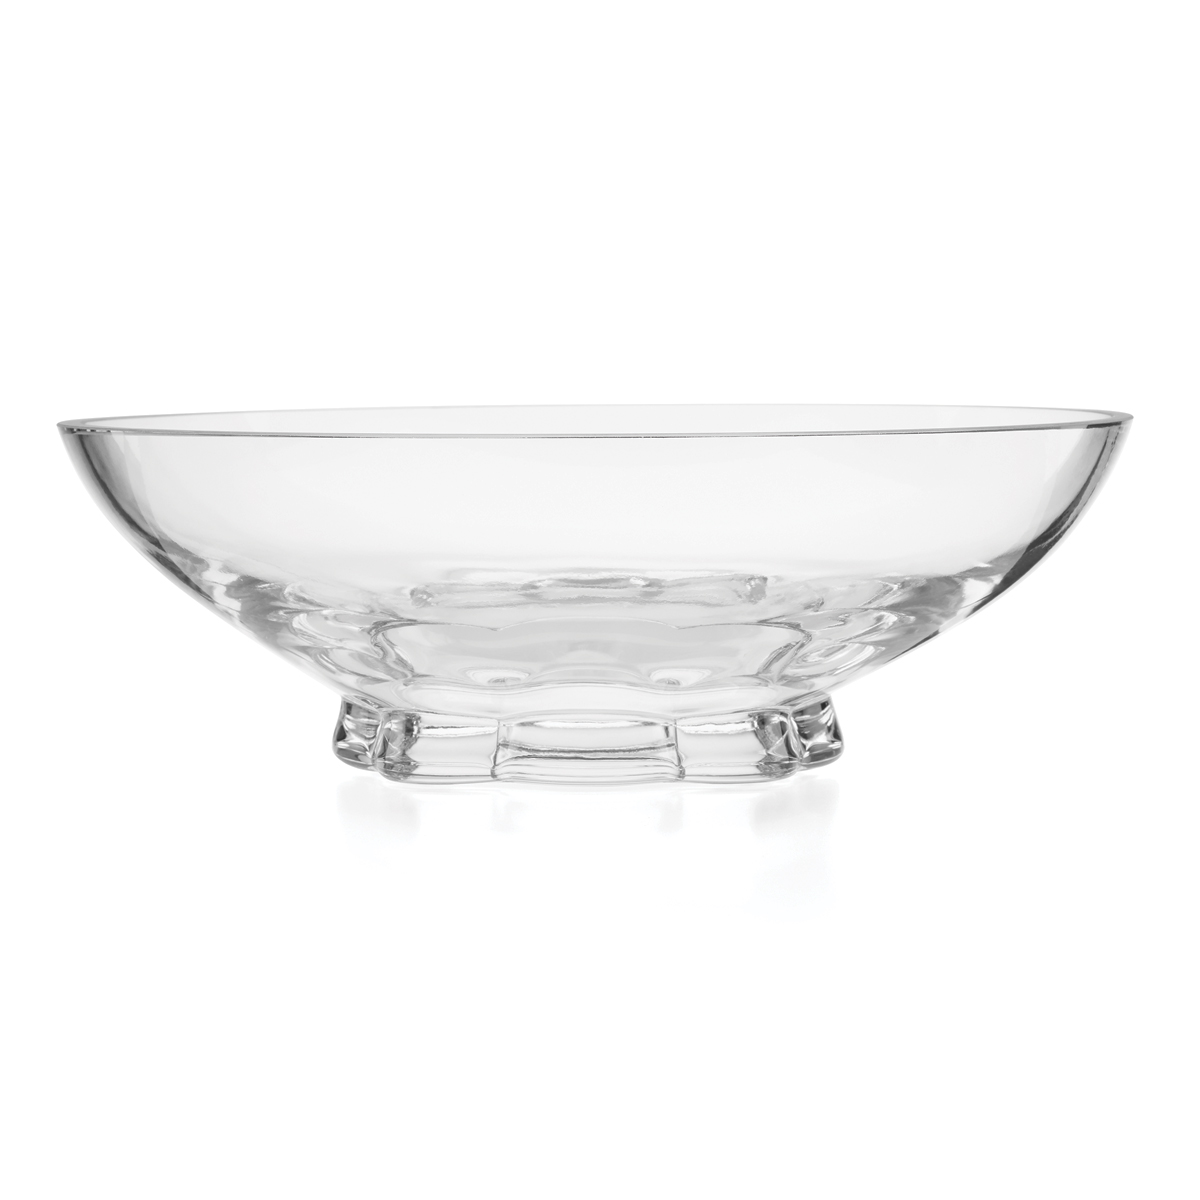 Kate Spade New York, Lenox Gramercy Centerpiece Bowl with Glass Foot